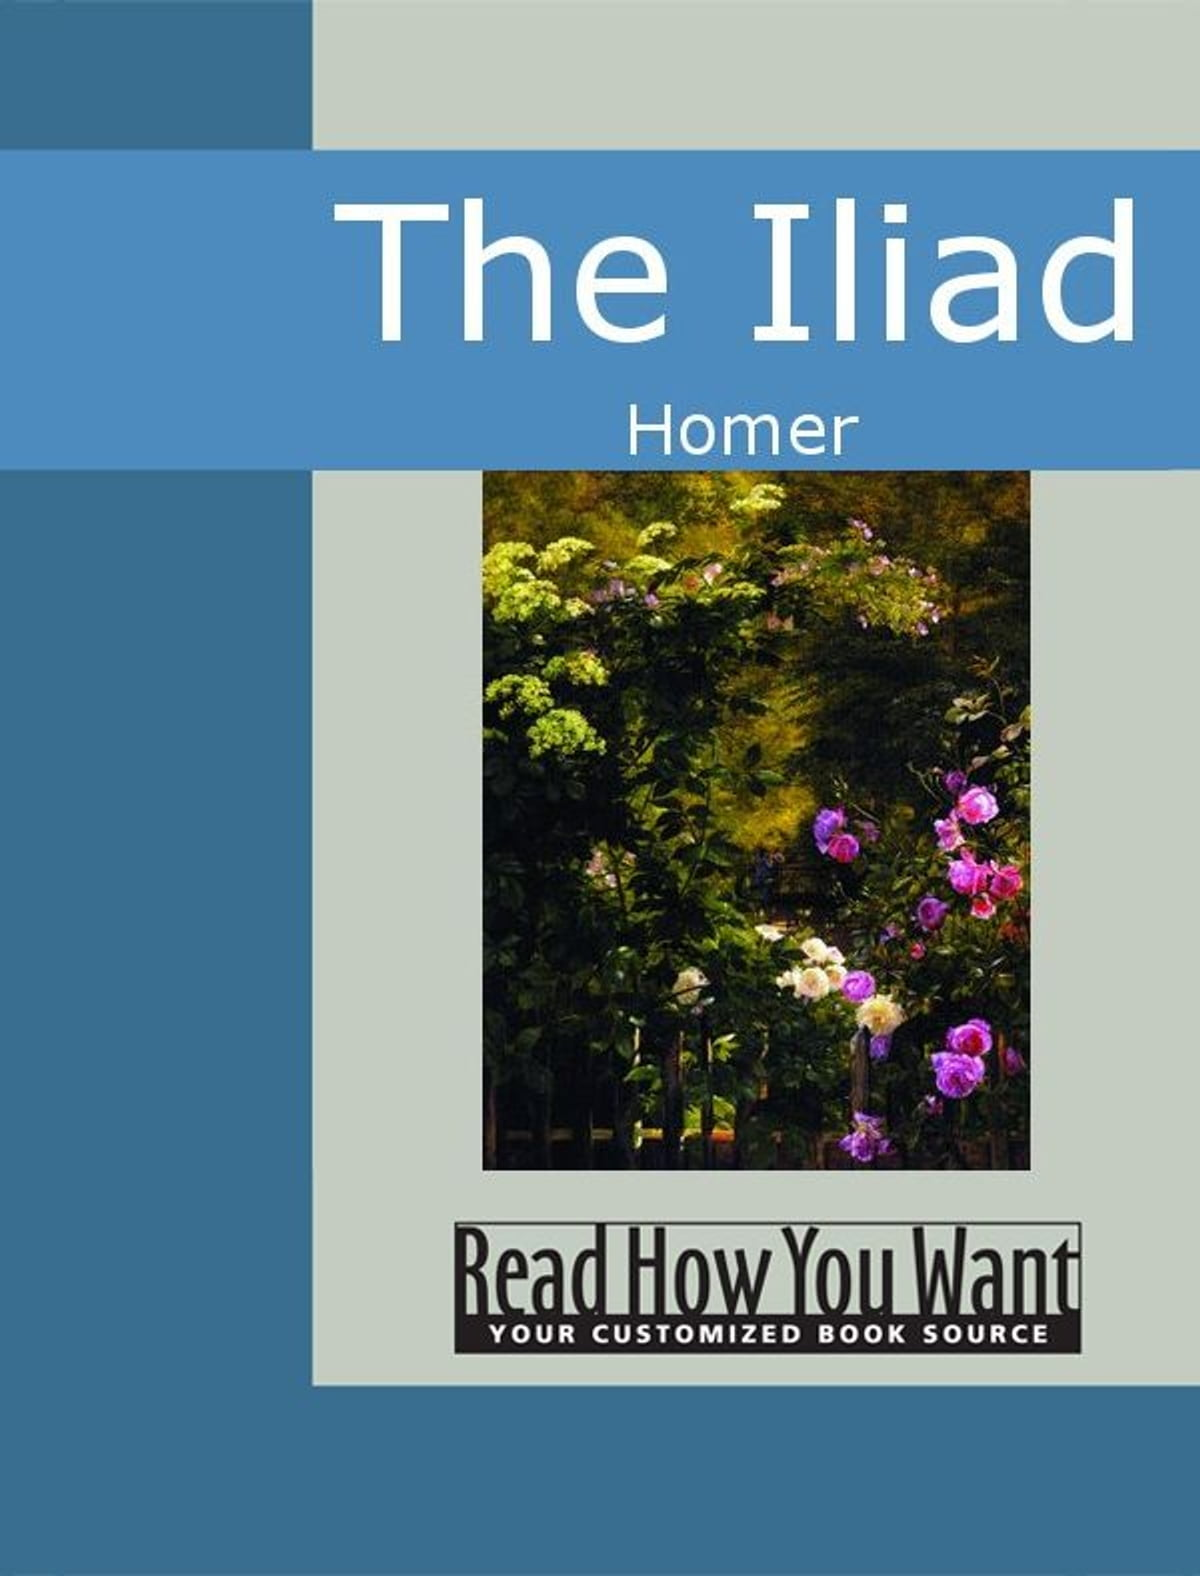 an analysis of the constant theme of death throughout the iiiad of homer Throughout the iliad of homer, the constant theme of death is inherently apparent each main character, either by a spear or merely a scratch from an arrow, was wounded or killed during the progression of the story.